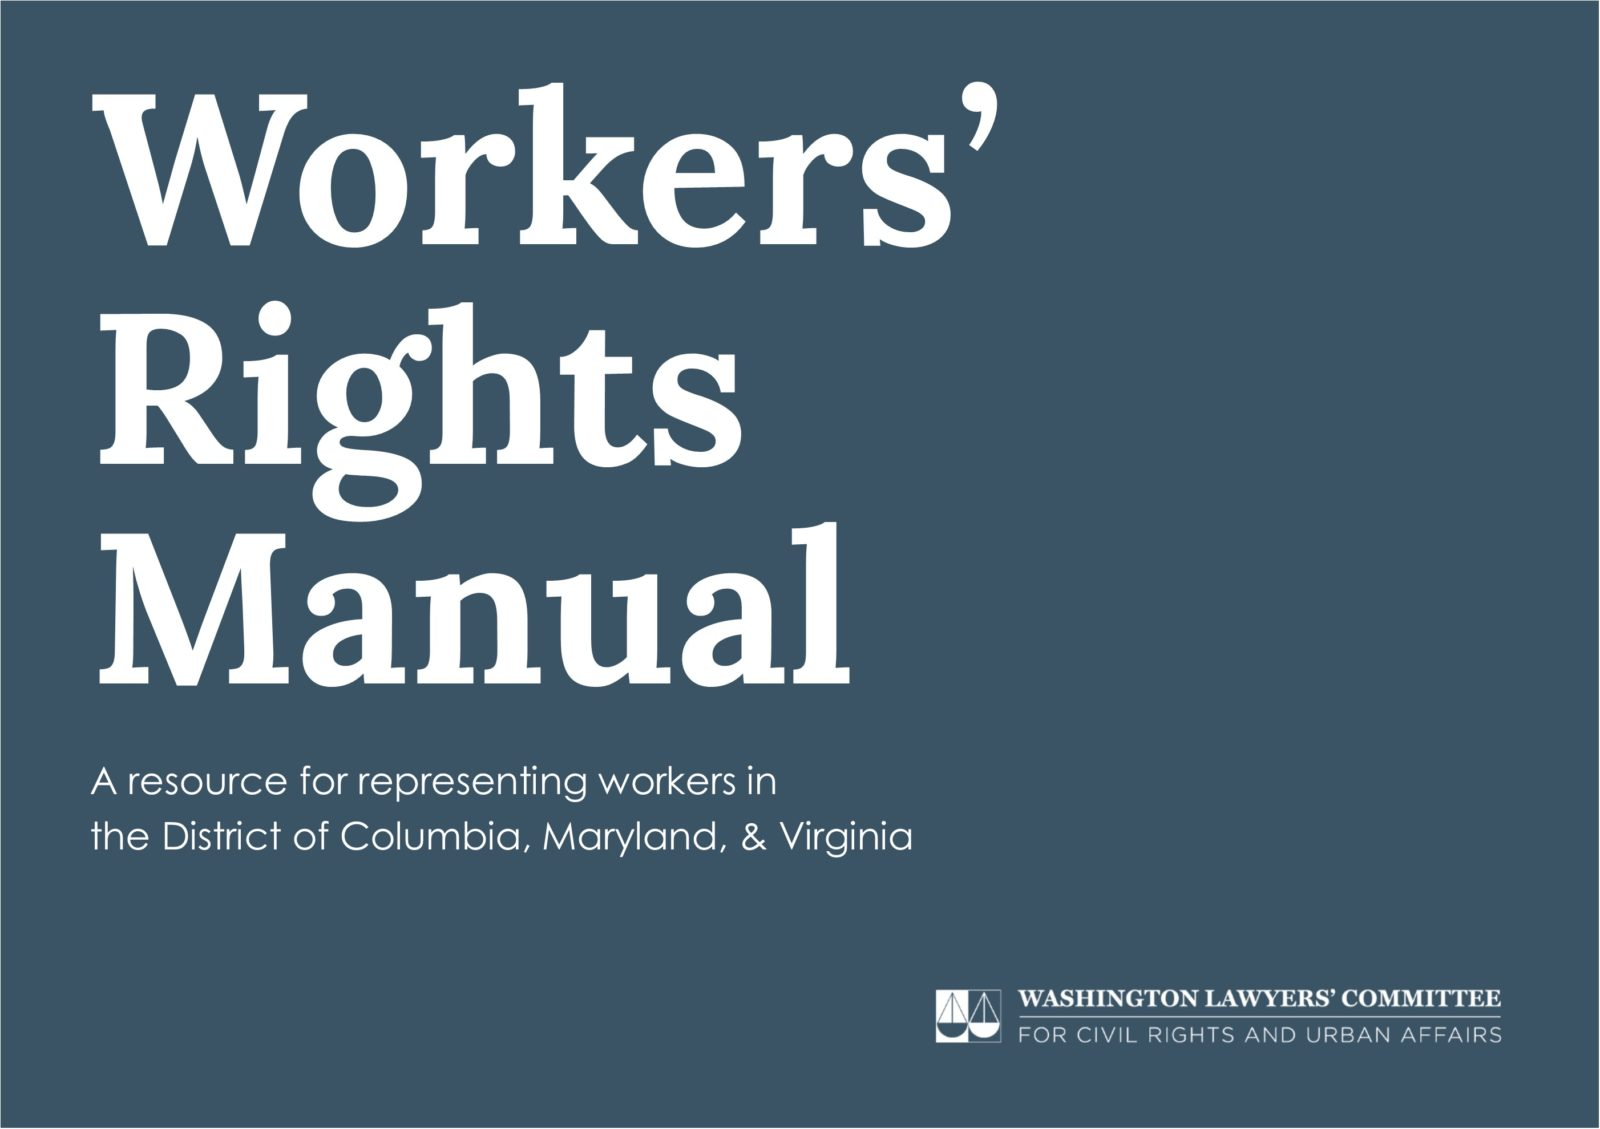 A resource for representing workers in the District of Columbia, Maryland,  & Virginia